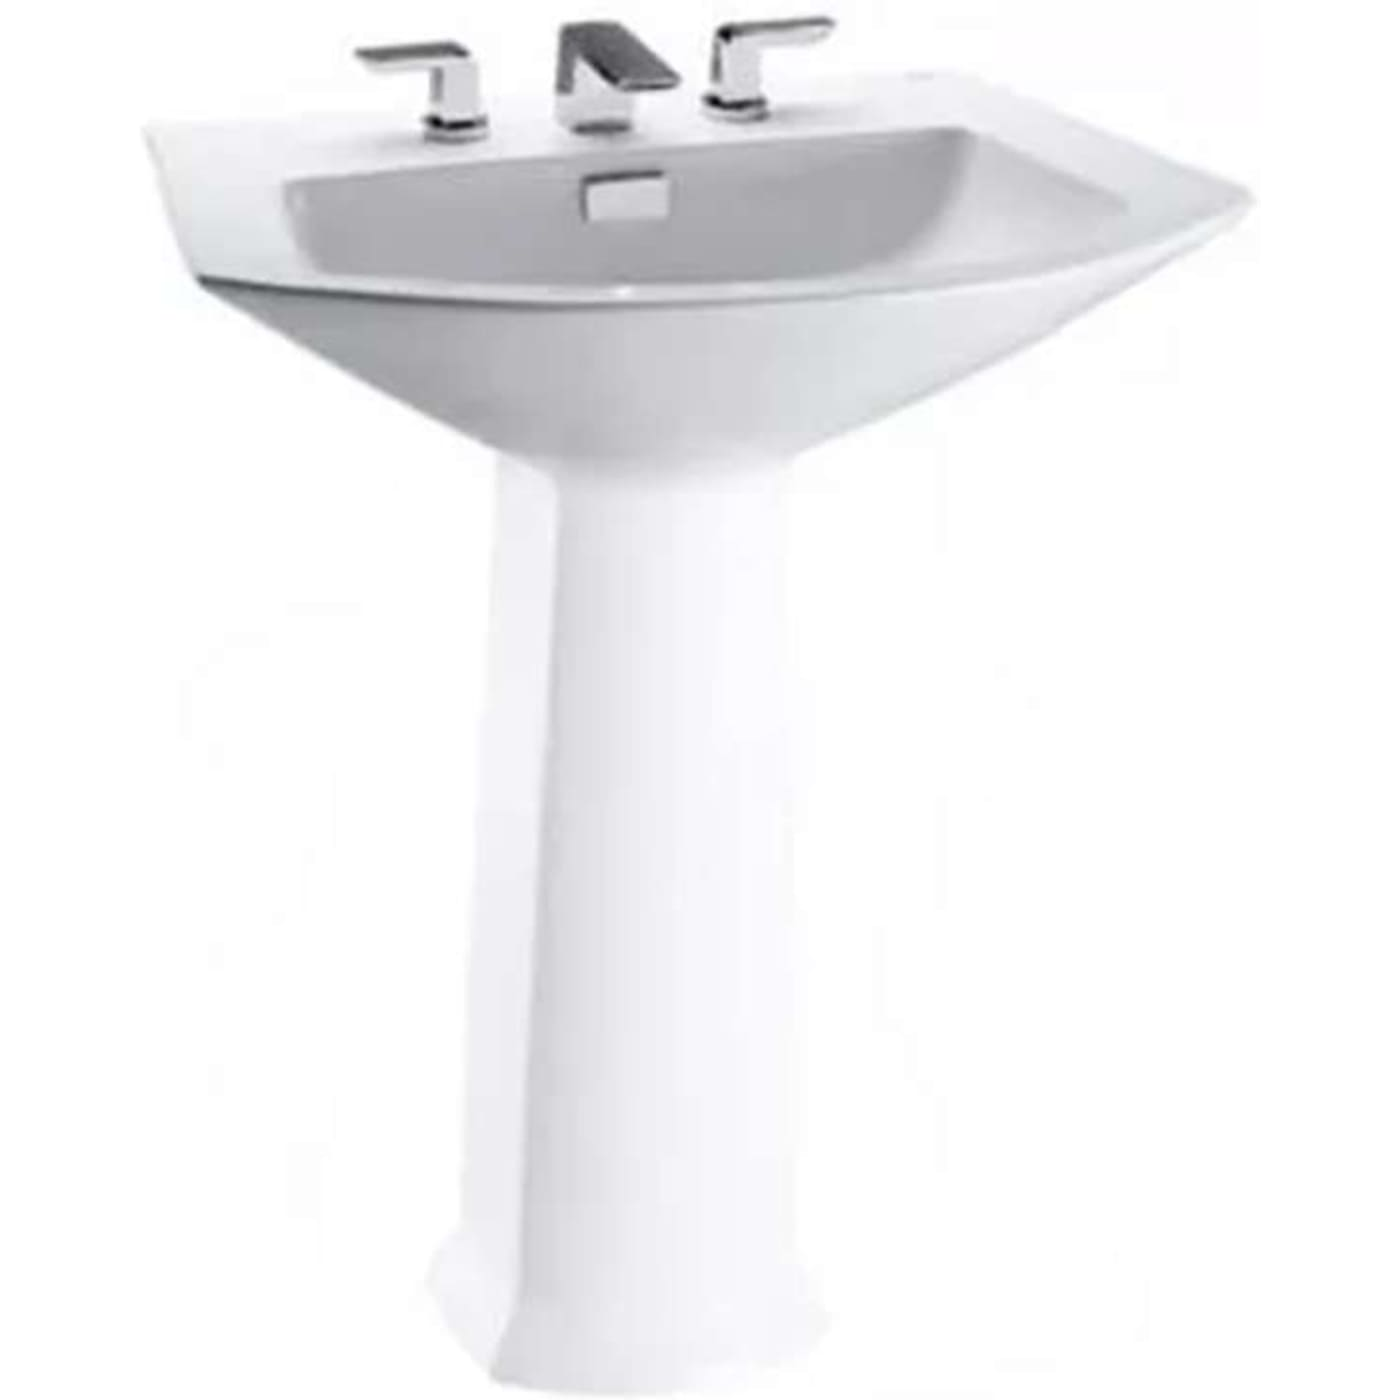 Toto Soiree Pedestal Vitreous China Bathroom Sink LT962#11 Colonial ...